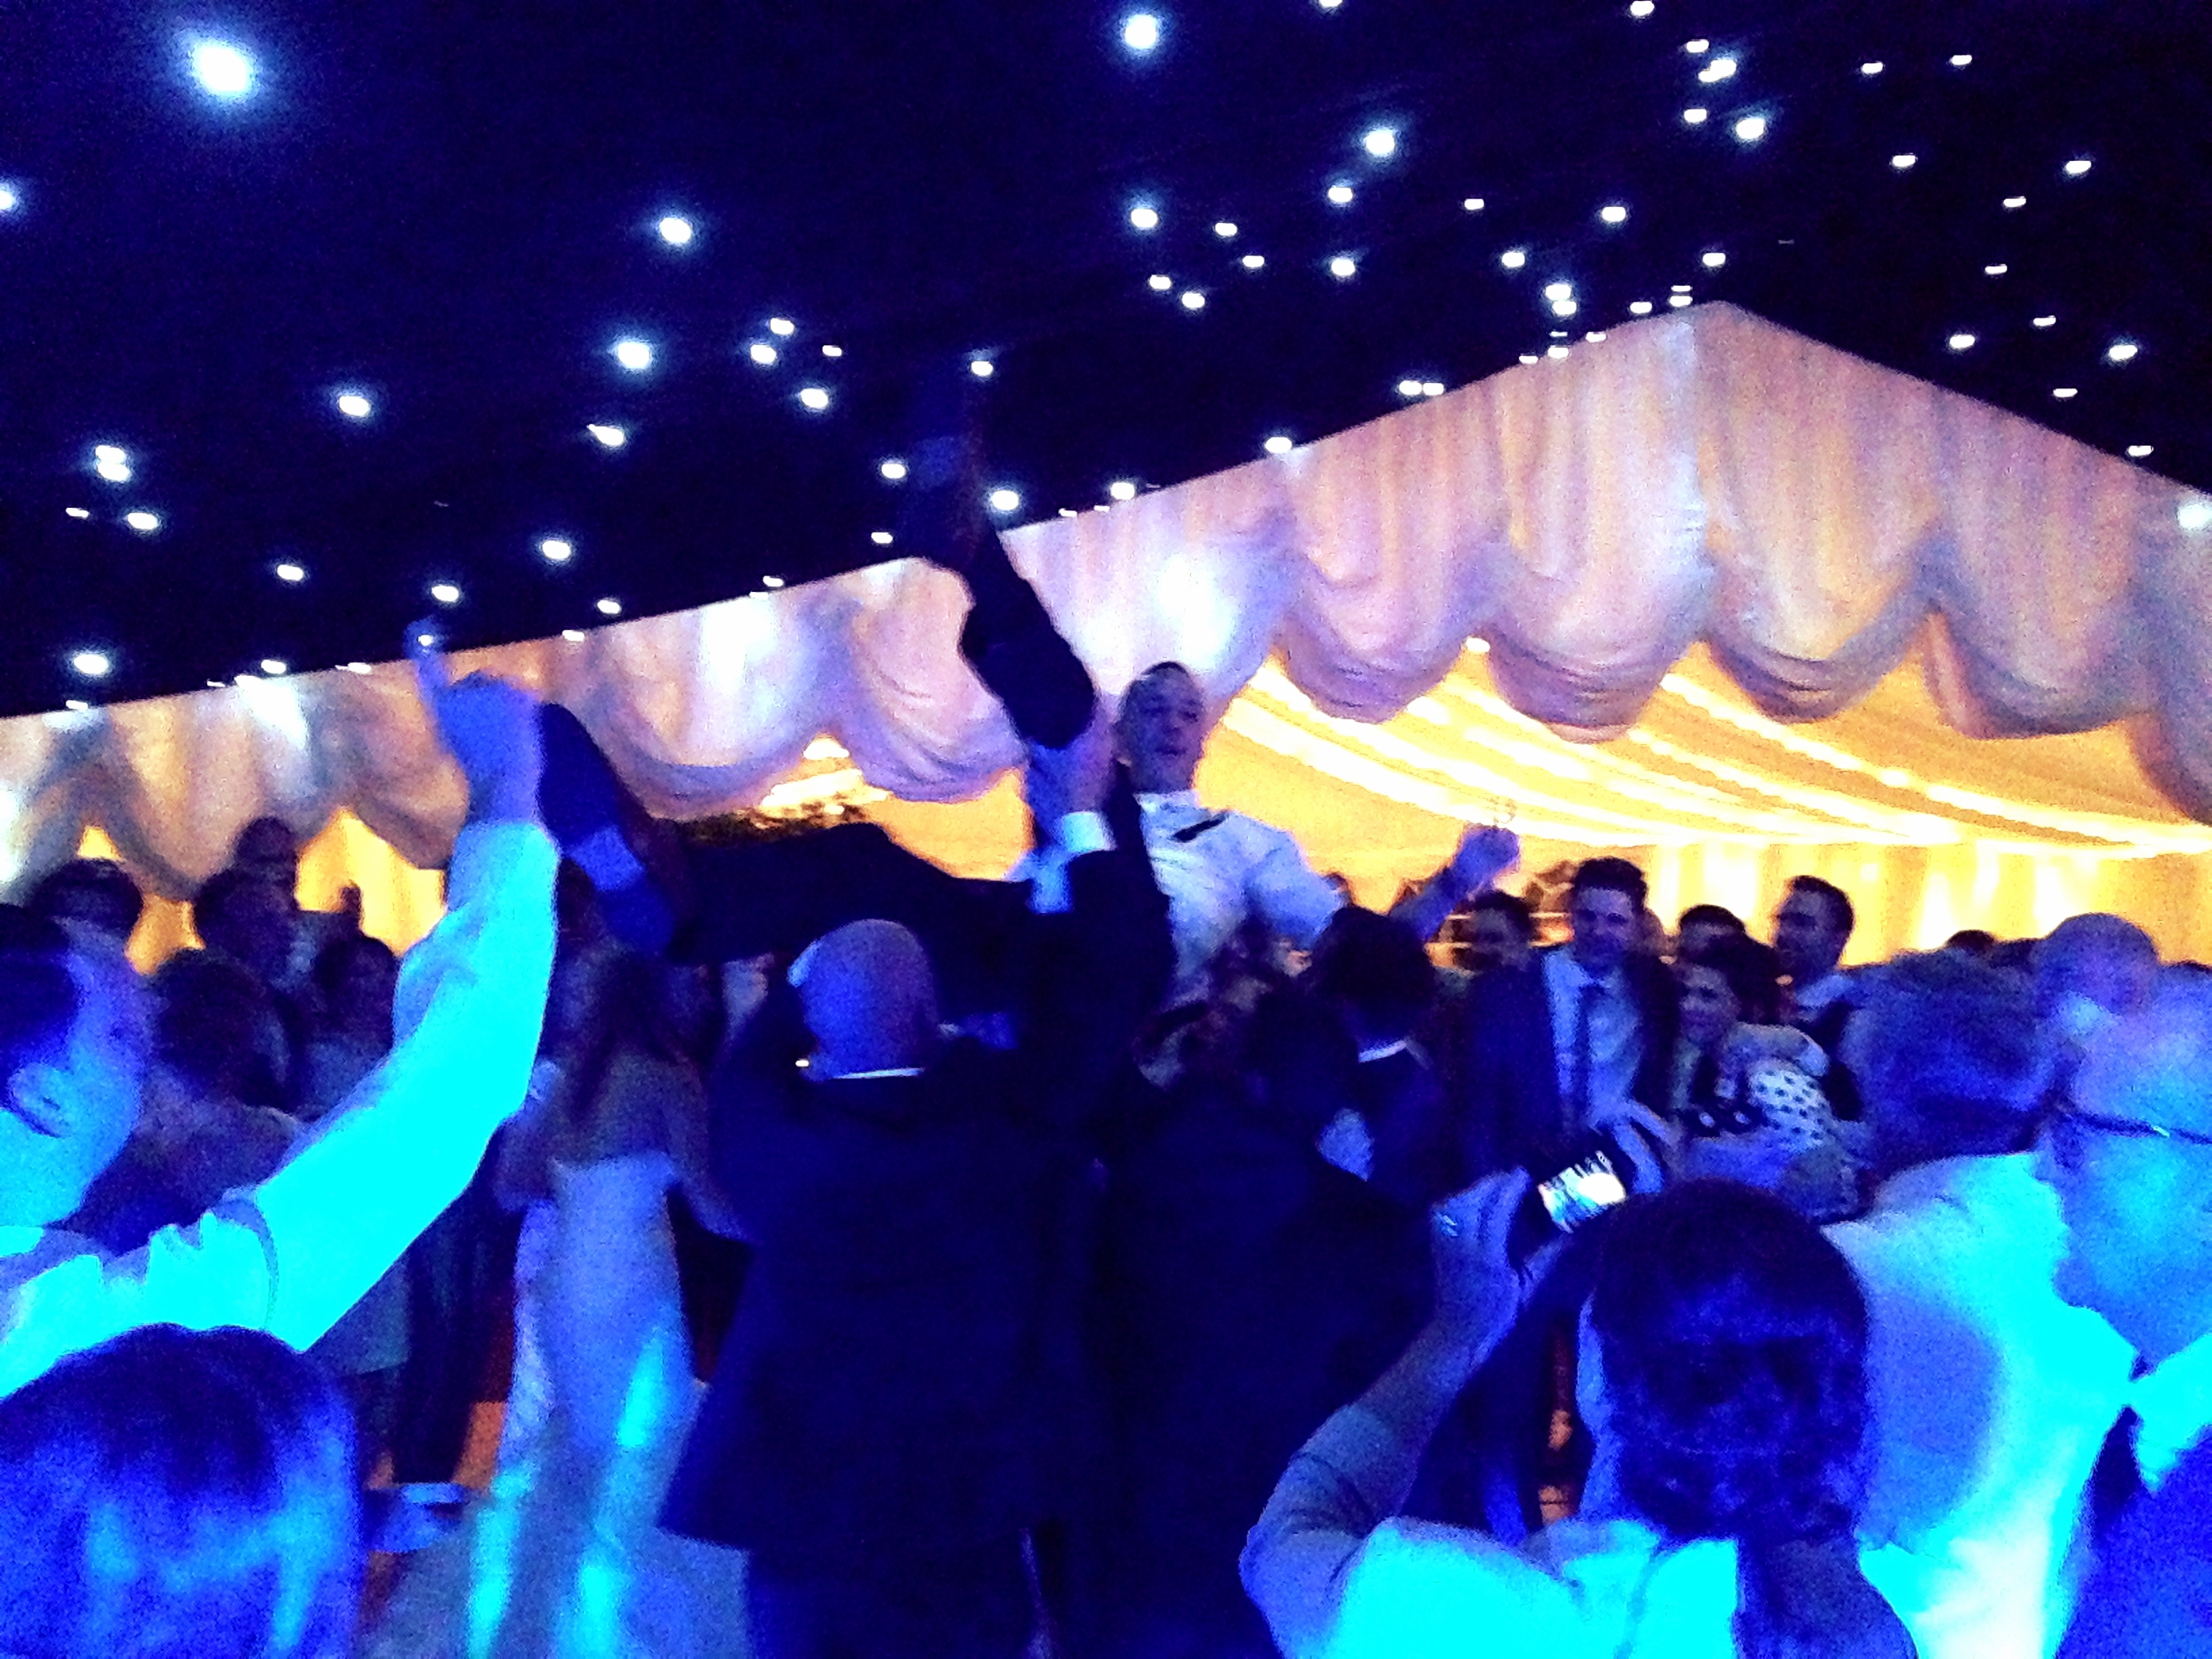 David the Groom gets a lift on the full dance floor!! Kate & David's wedding, Fryerning Essex